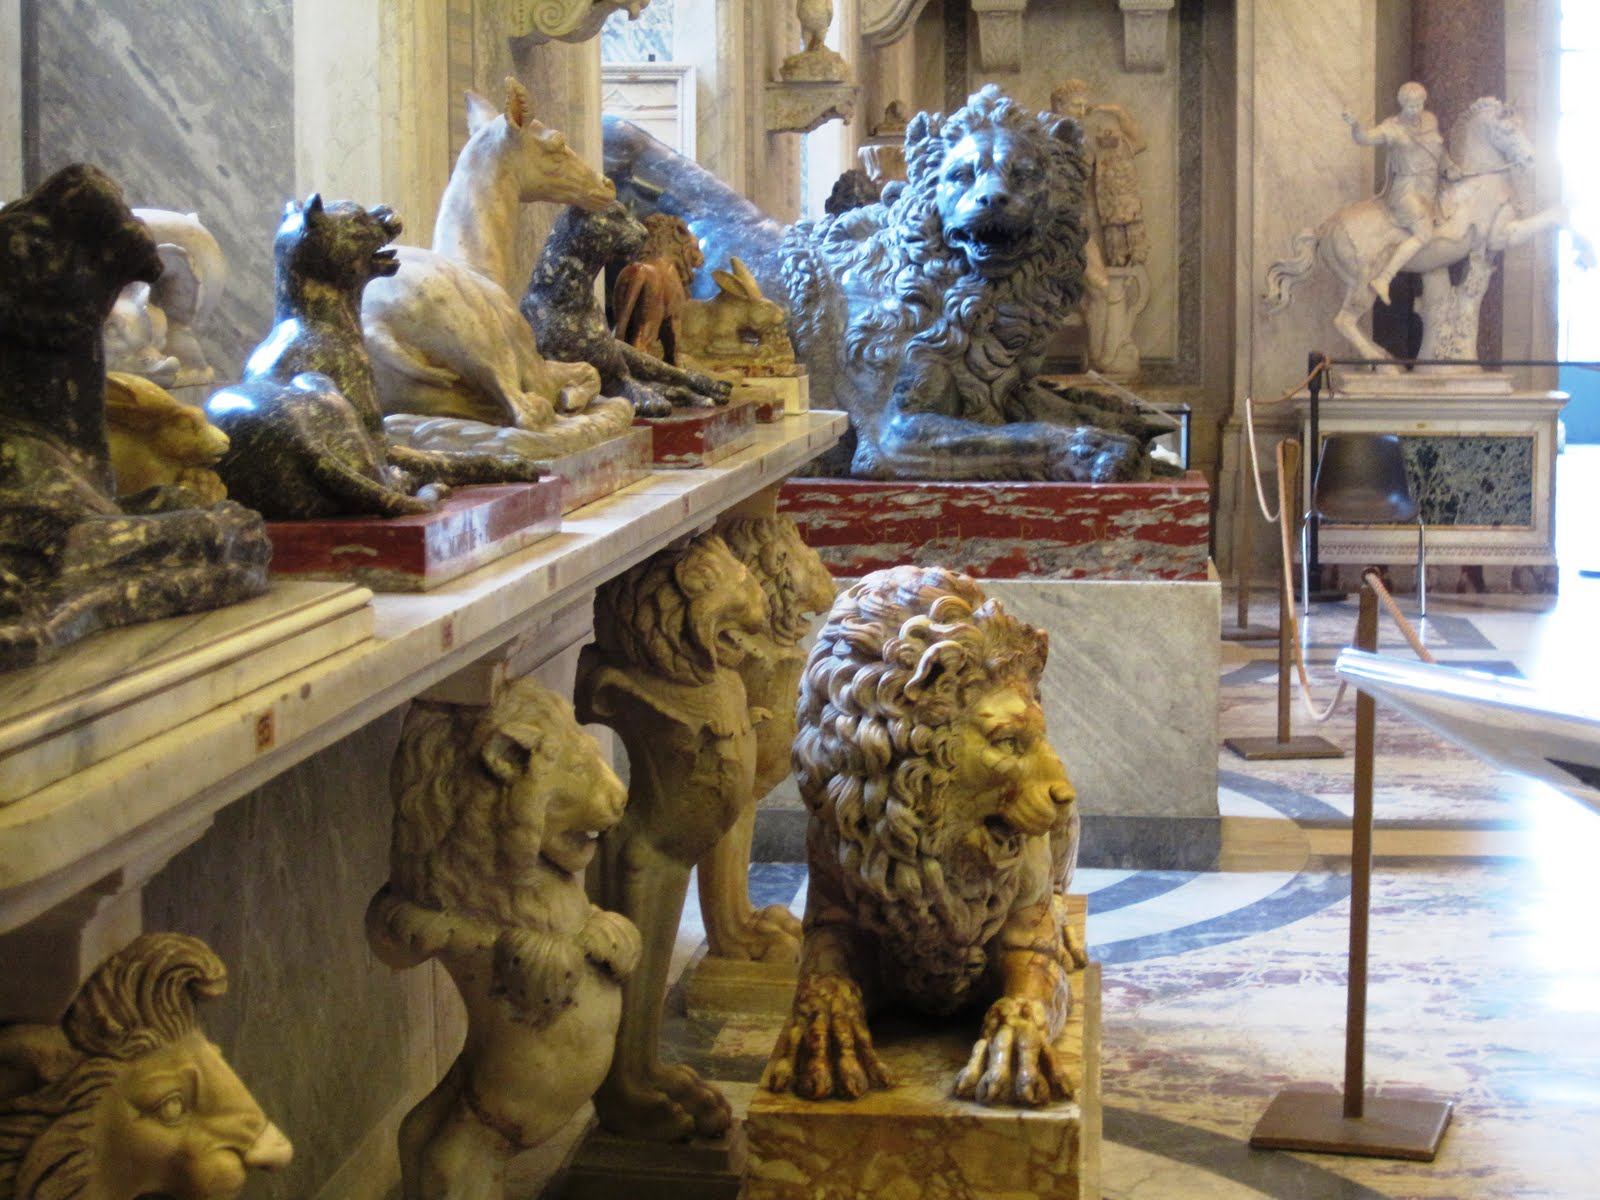 animal-room-in-vatican-museum